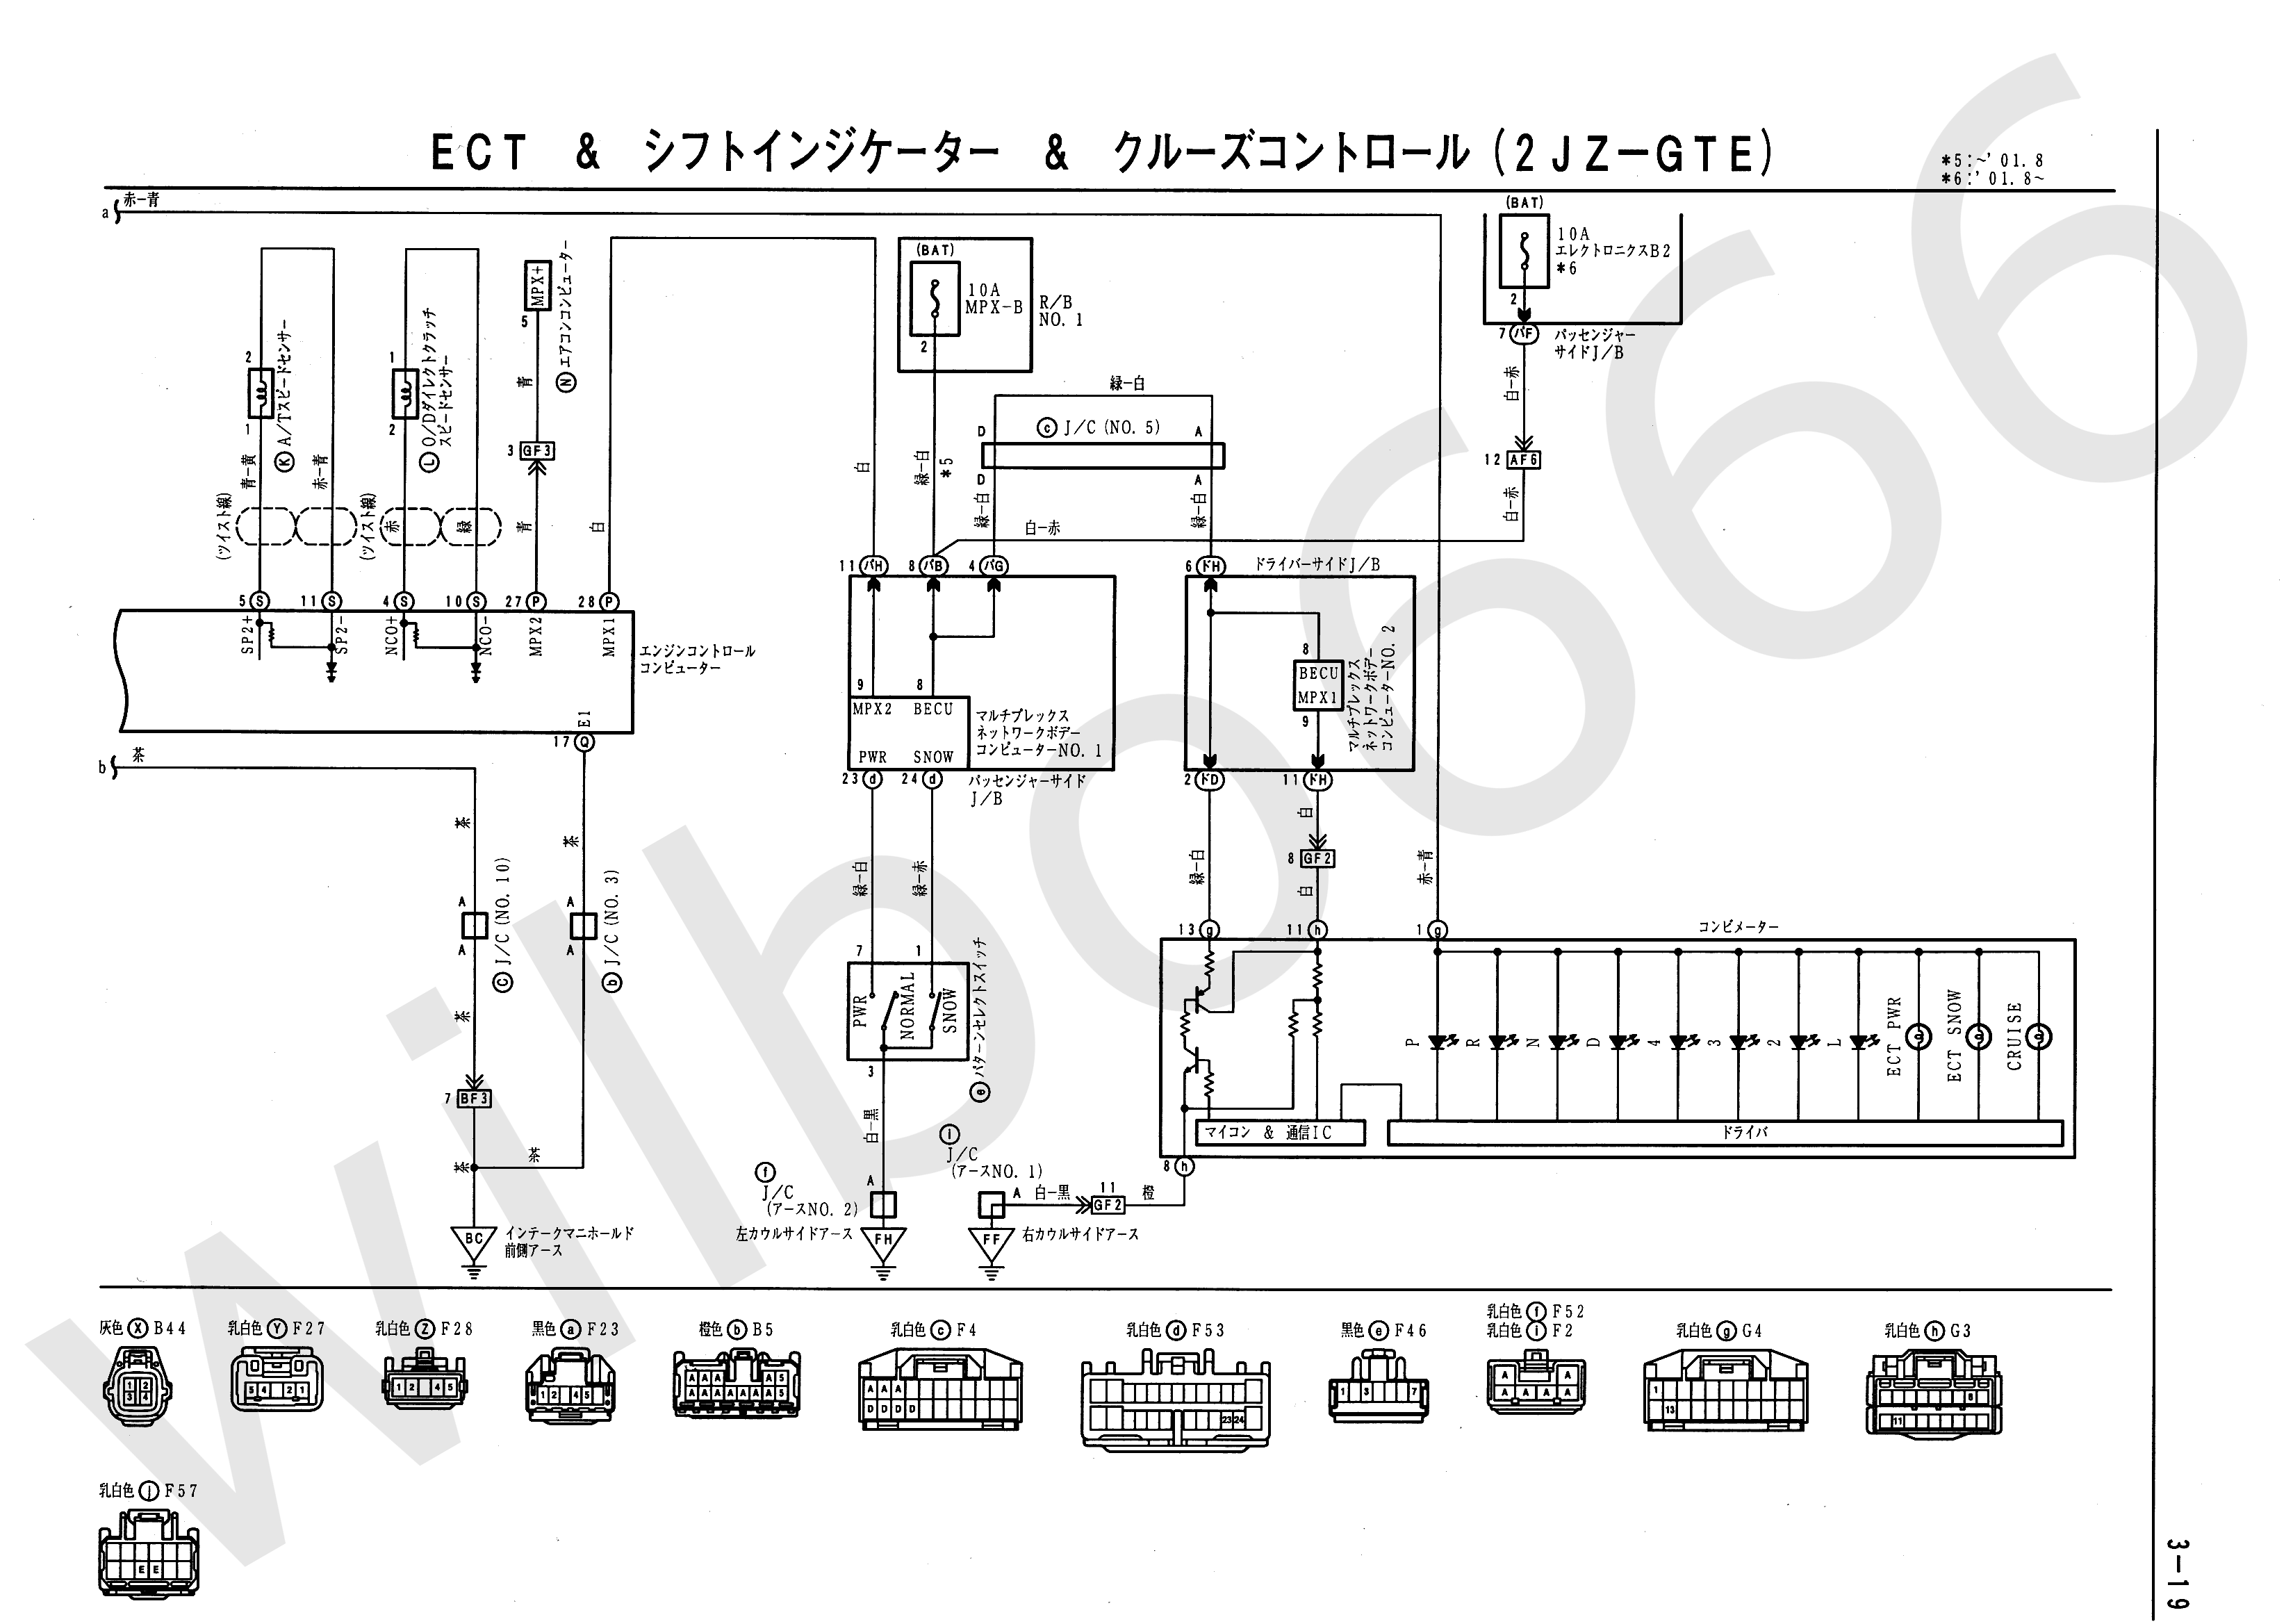 JZS161 Electrical Wiring Diagram 6748505 3 19 wilbo666 2jz gte vvti jzs161 aristo engine wiring 2jz wiring diagram at gsmportal.co